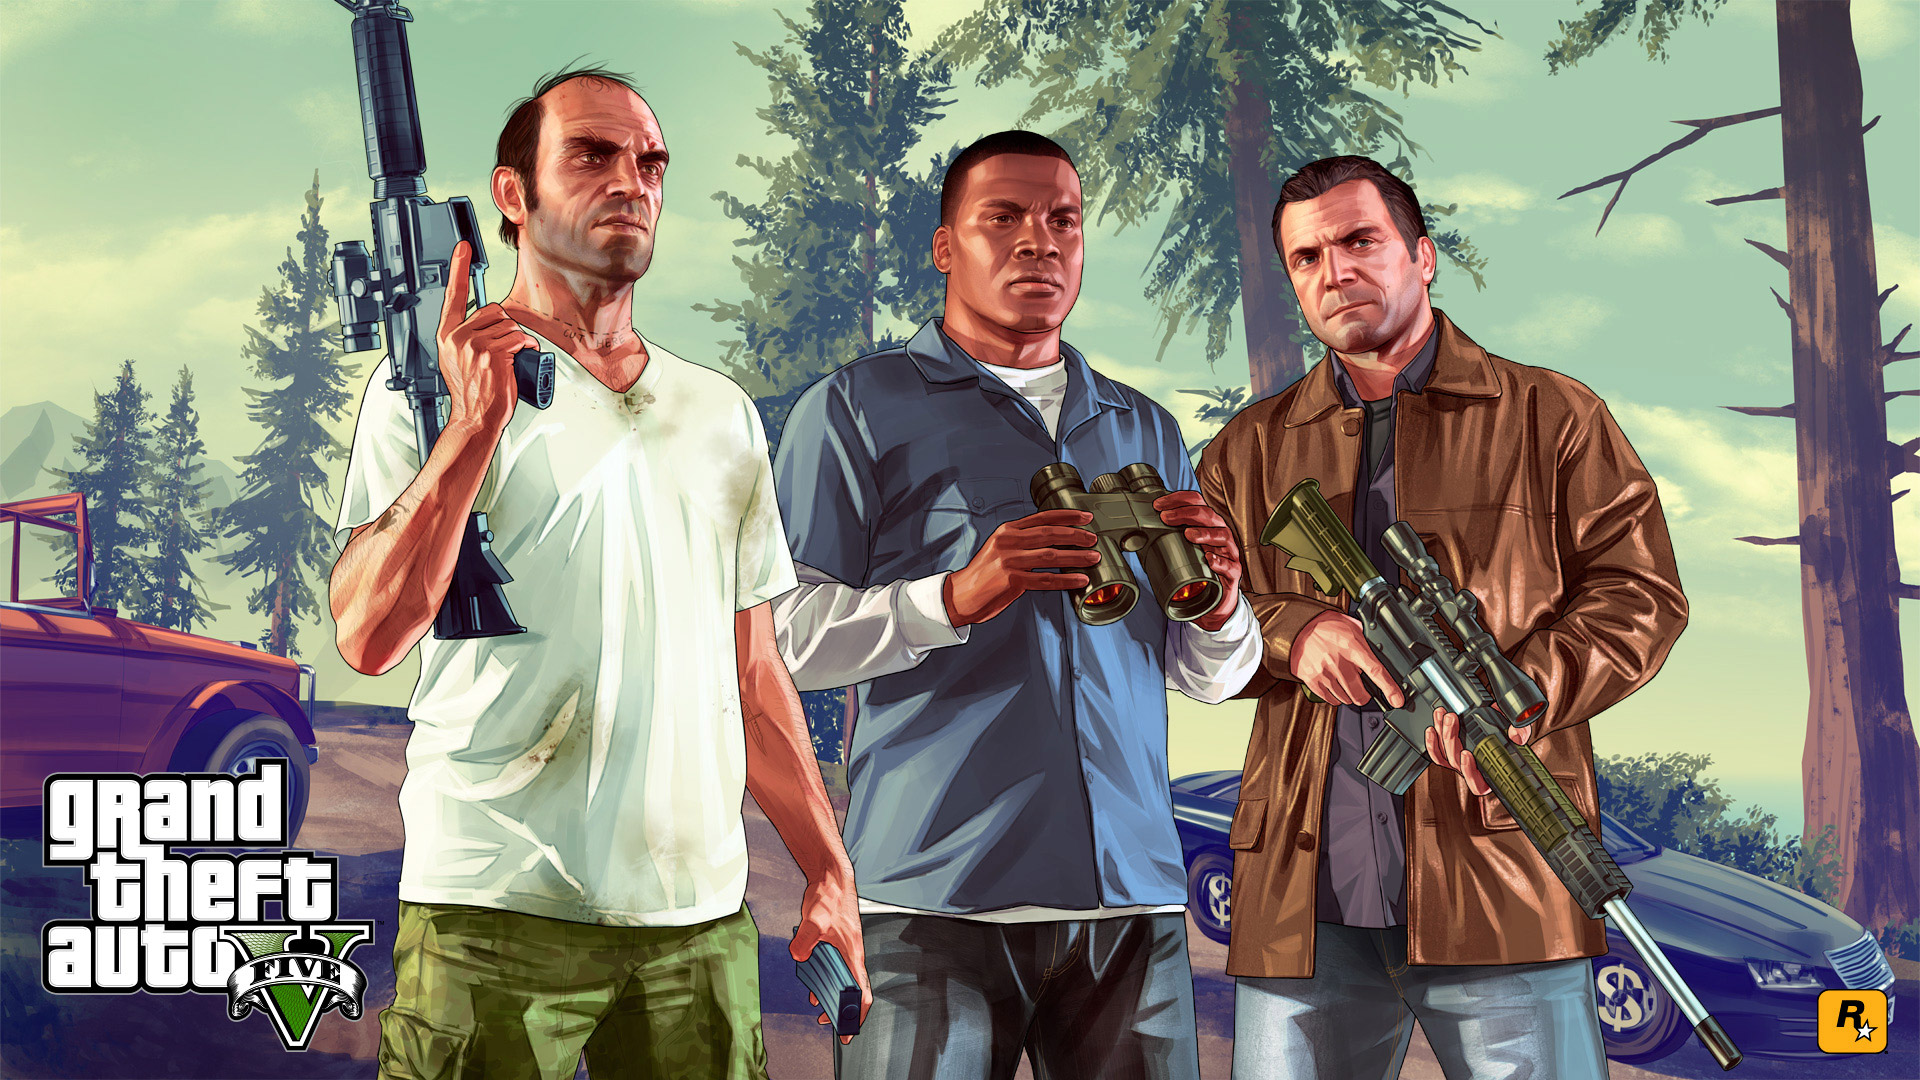 Free Grand Theft Auto V Wallpaper in 1920x1080